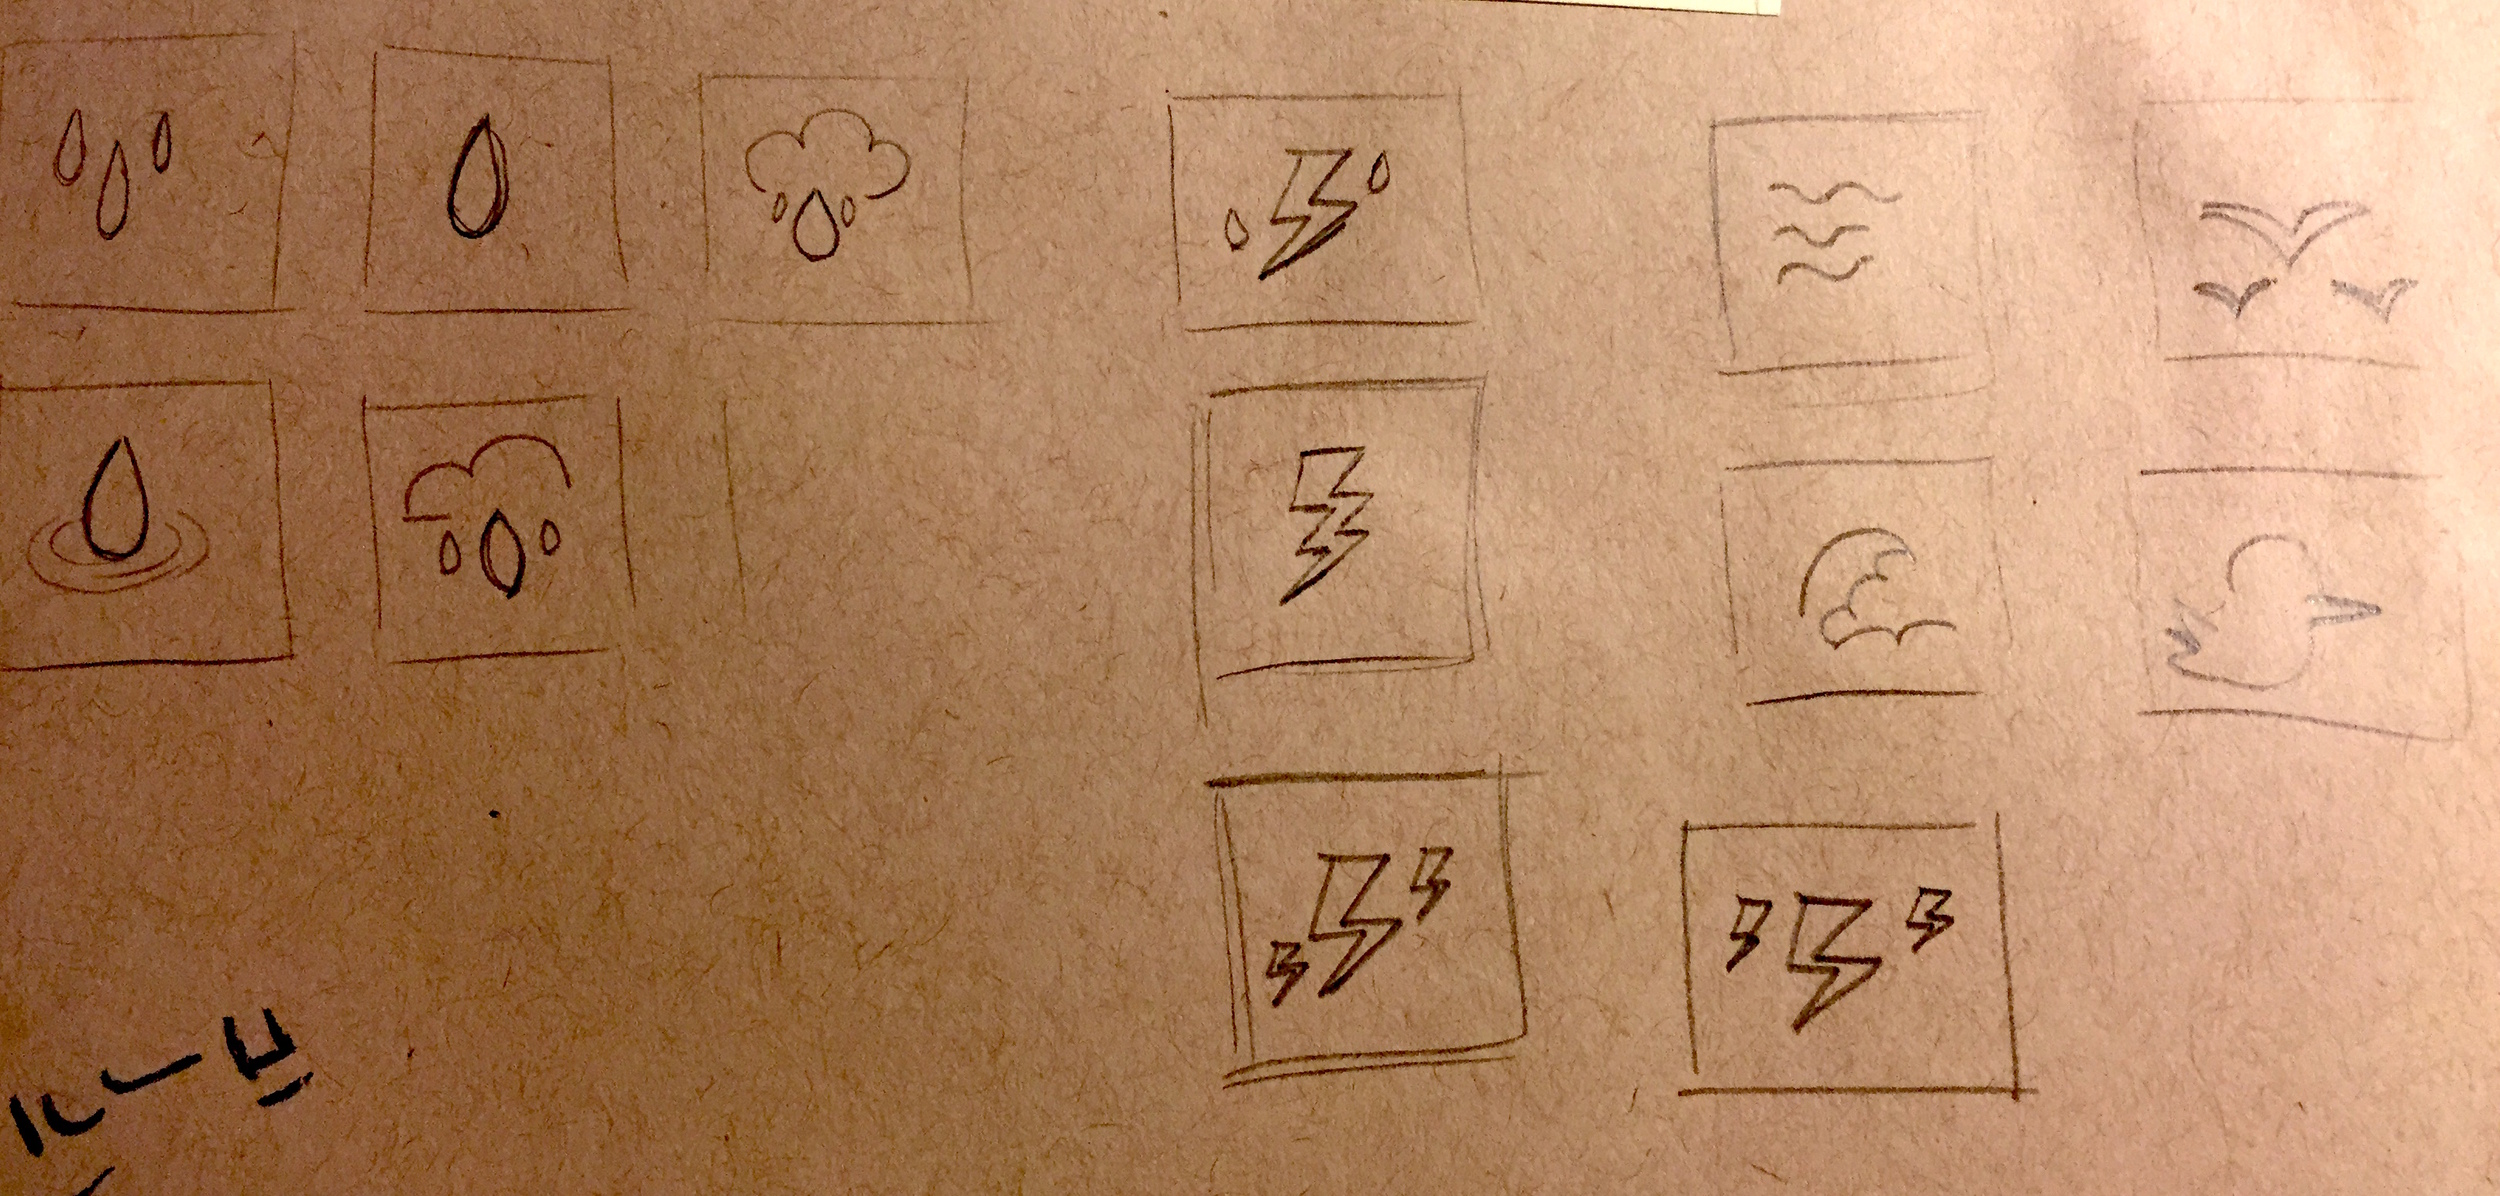 Sketching helped me narrow down the symbols I'd use in the prototype.